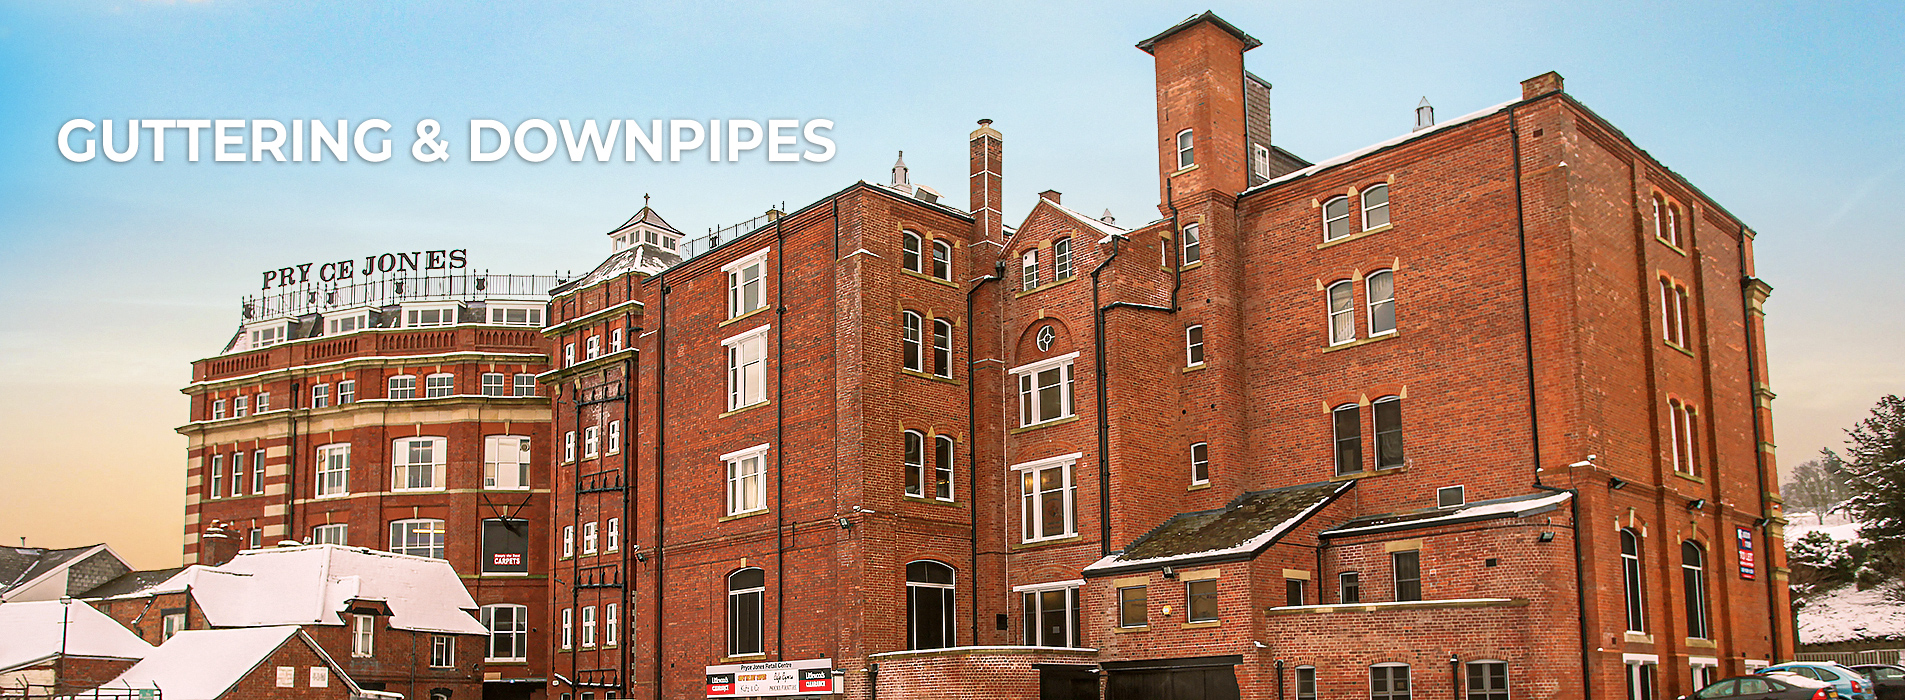 Guttering and Downpipes Pryce Jones